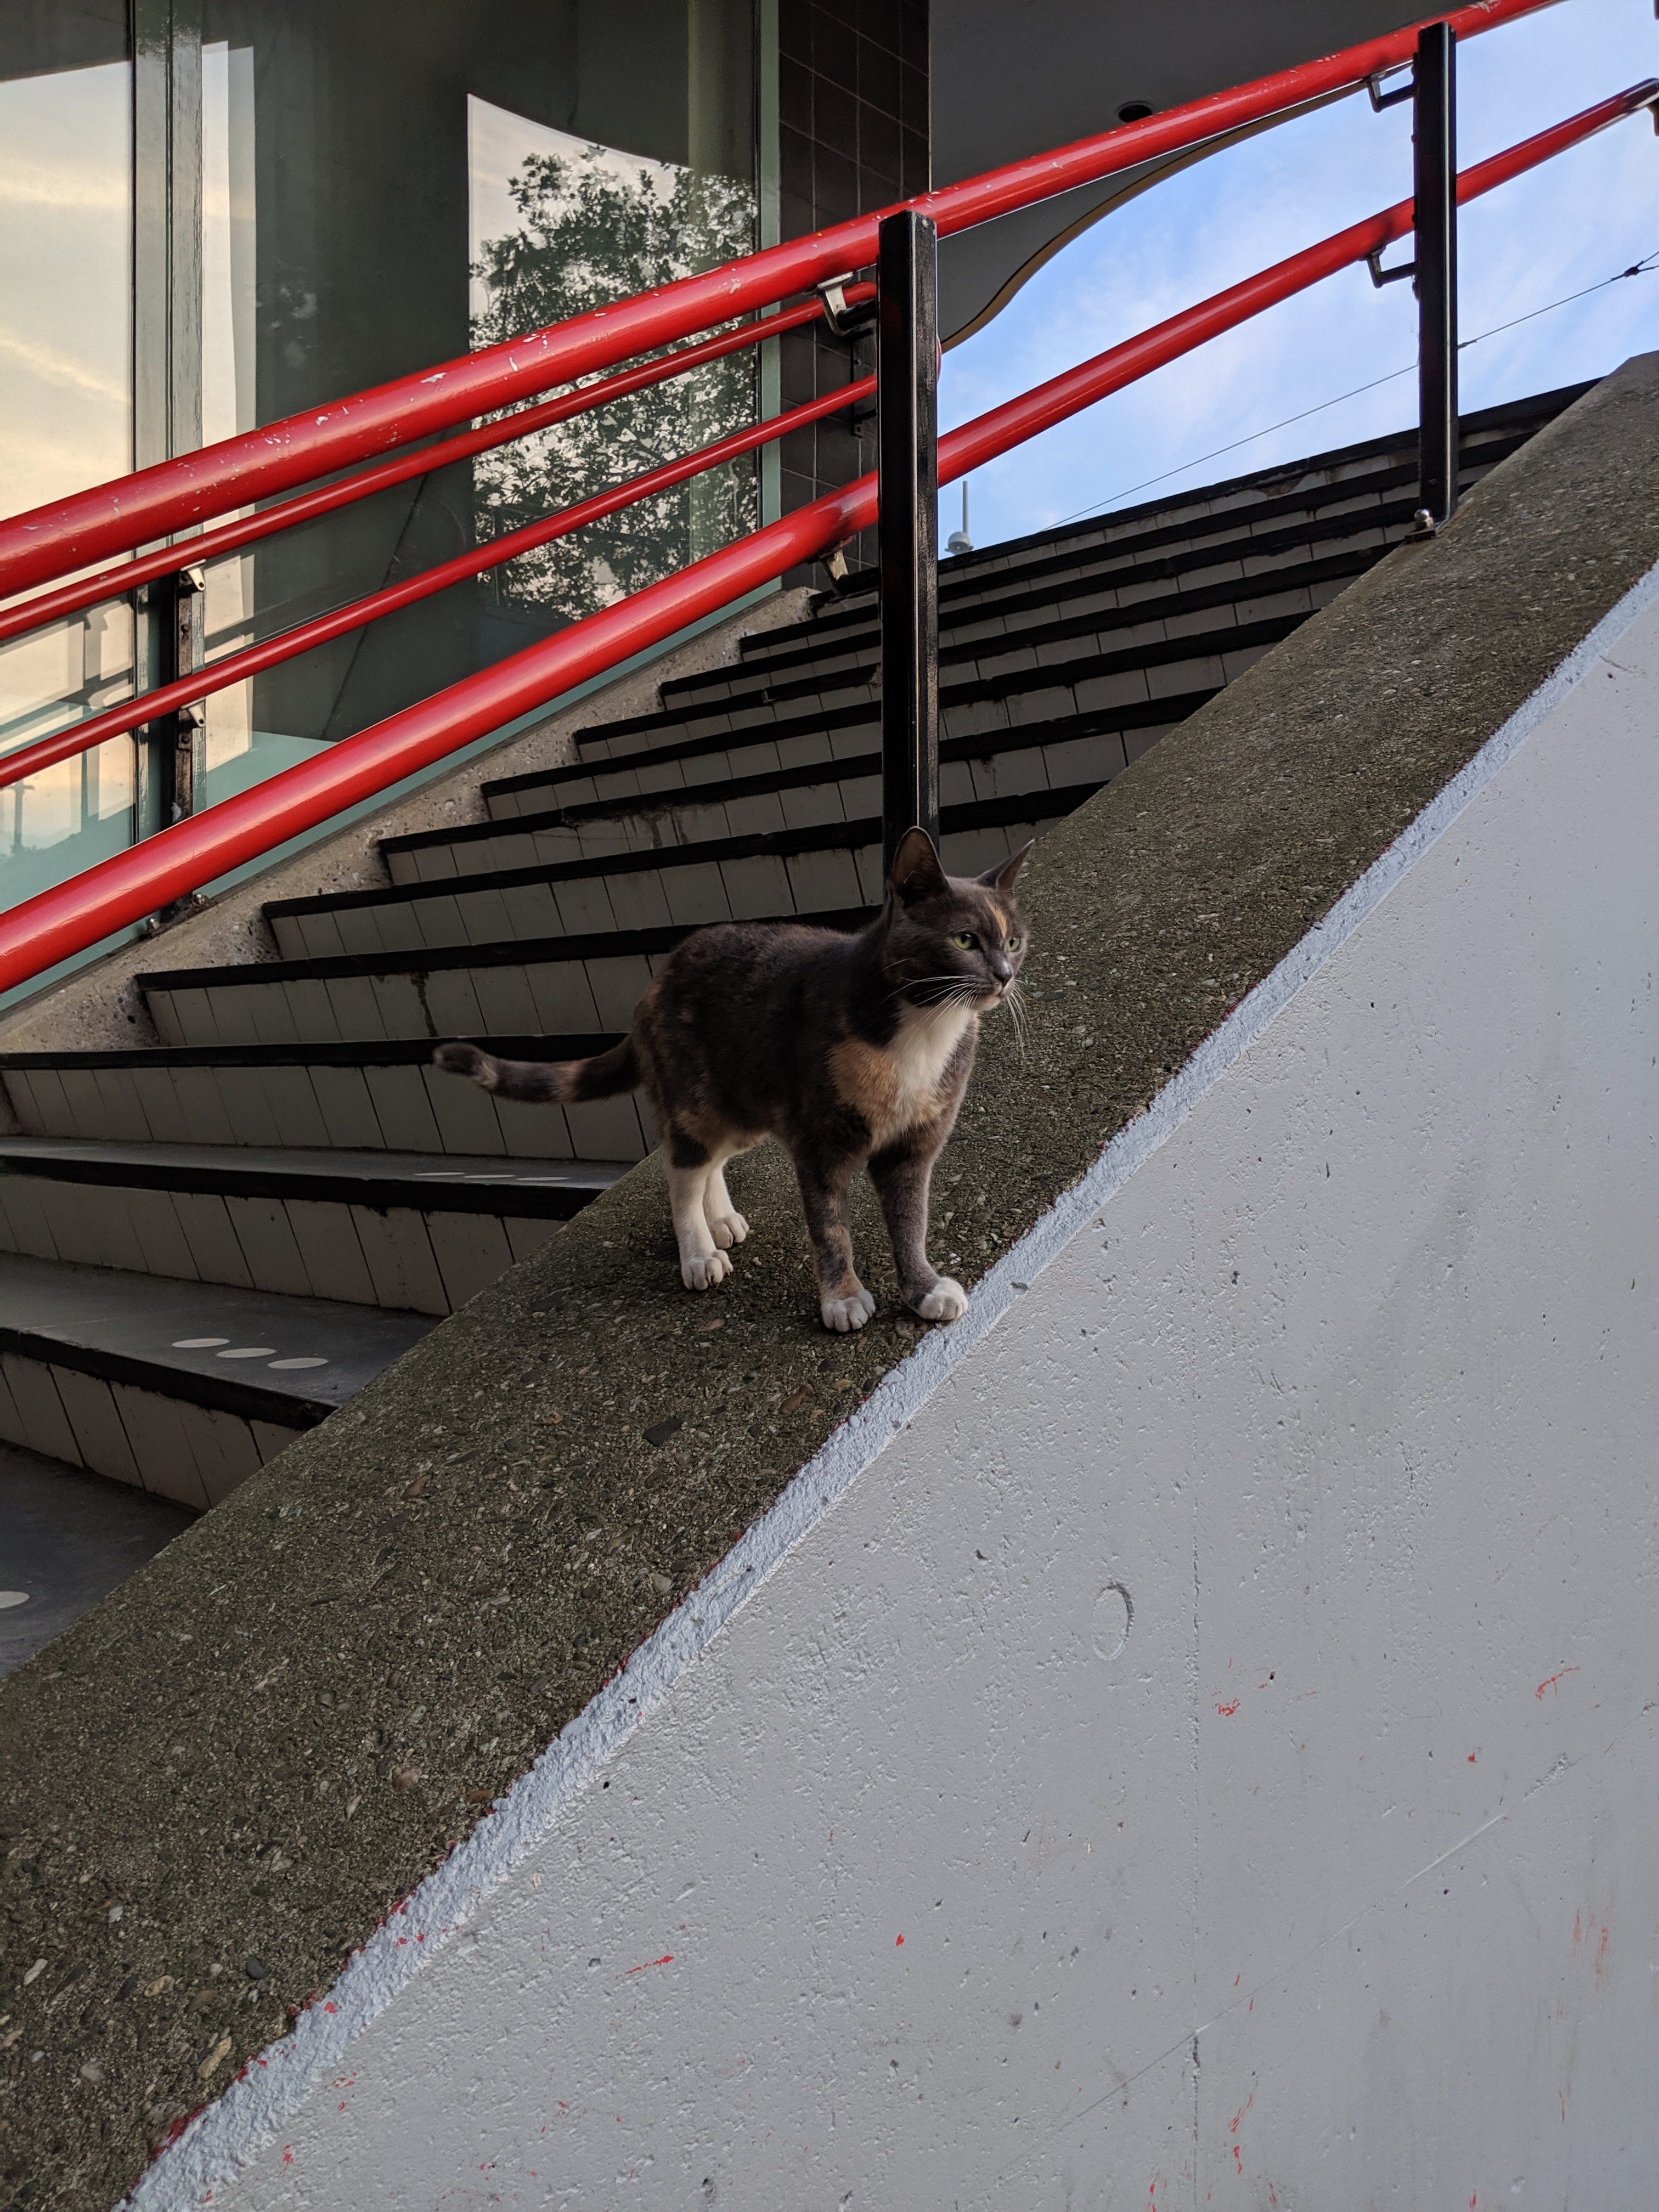 A cat at Velperpoort train station